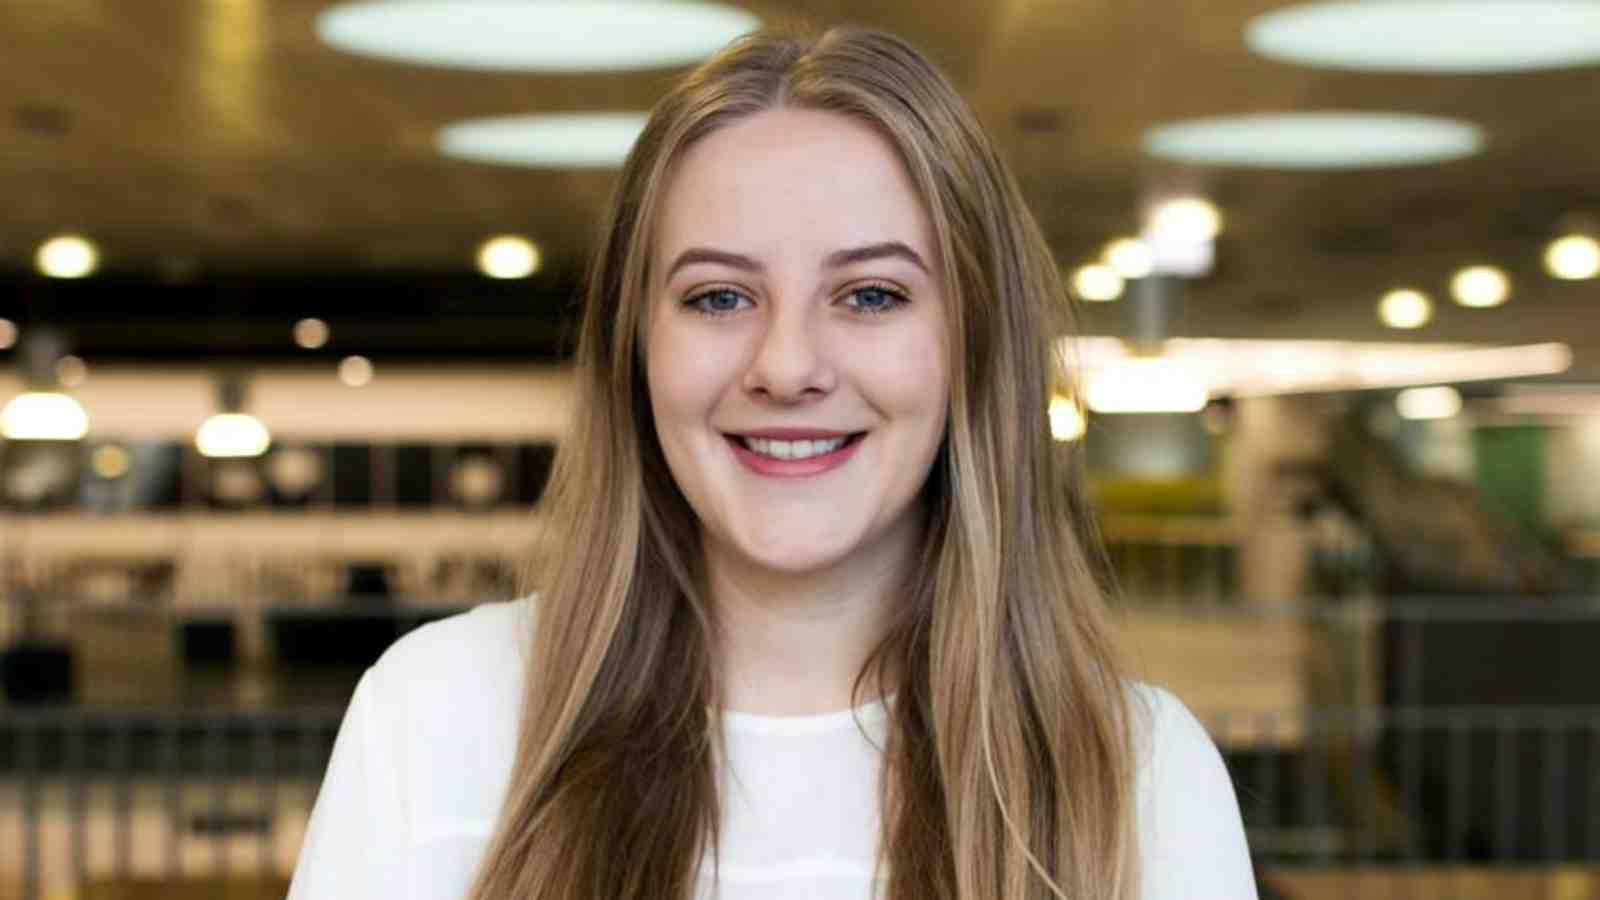 Congratulations To Bcom Student Sarah Postlethwaite Who Will Be Competing In An International Case Compeion